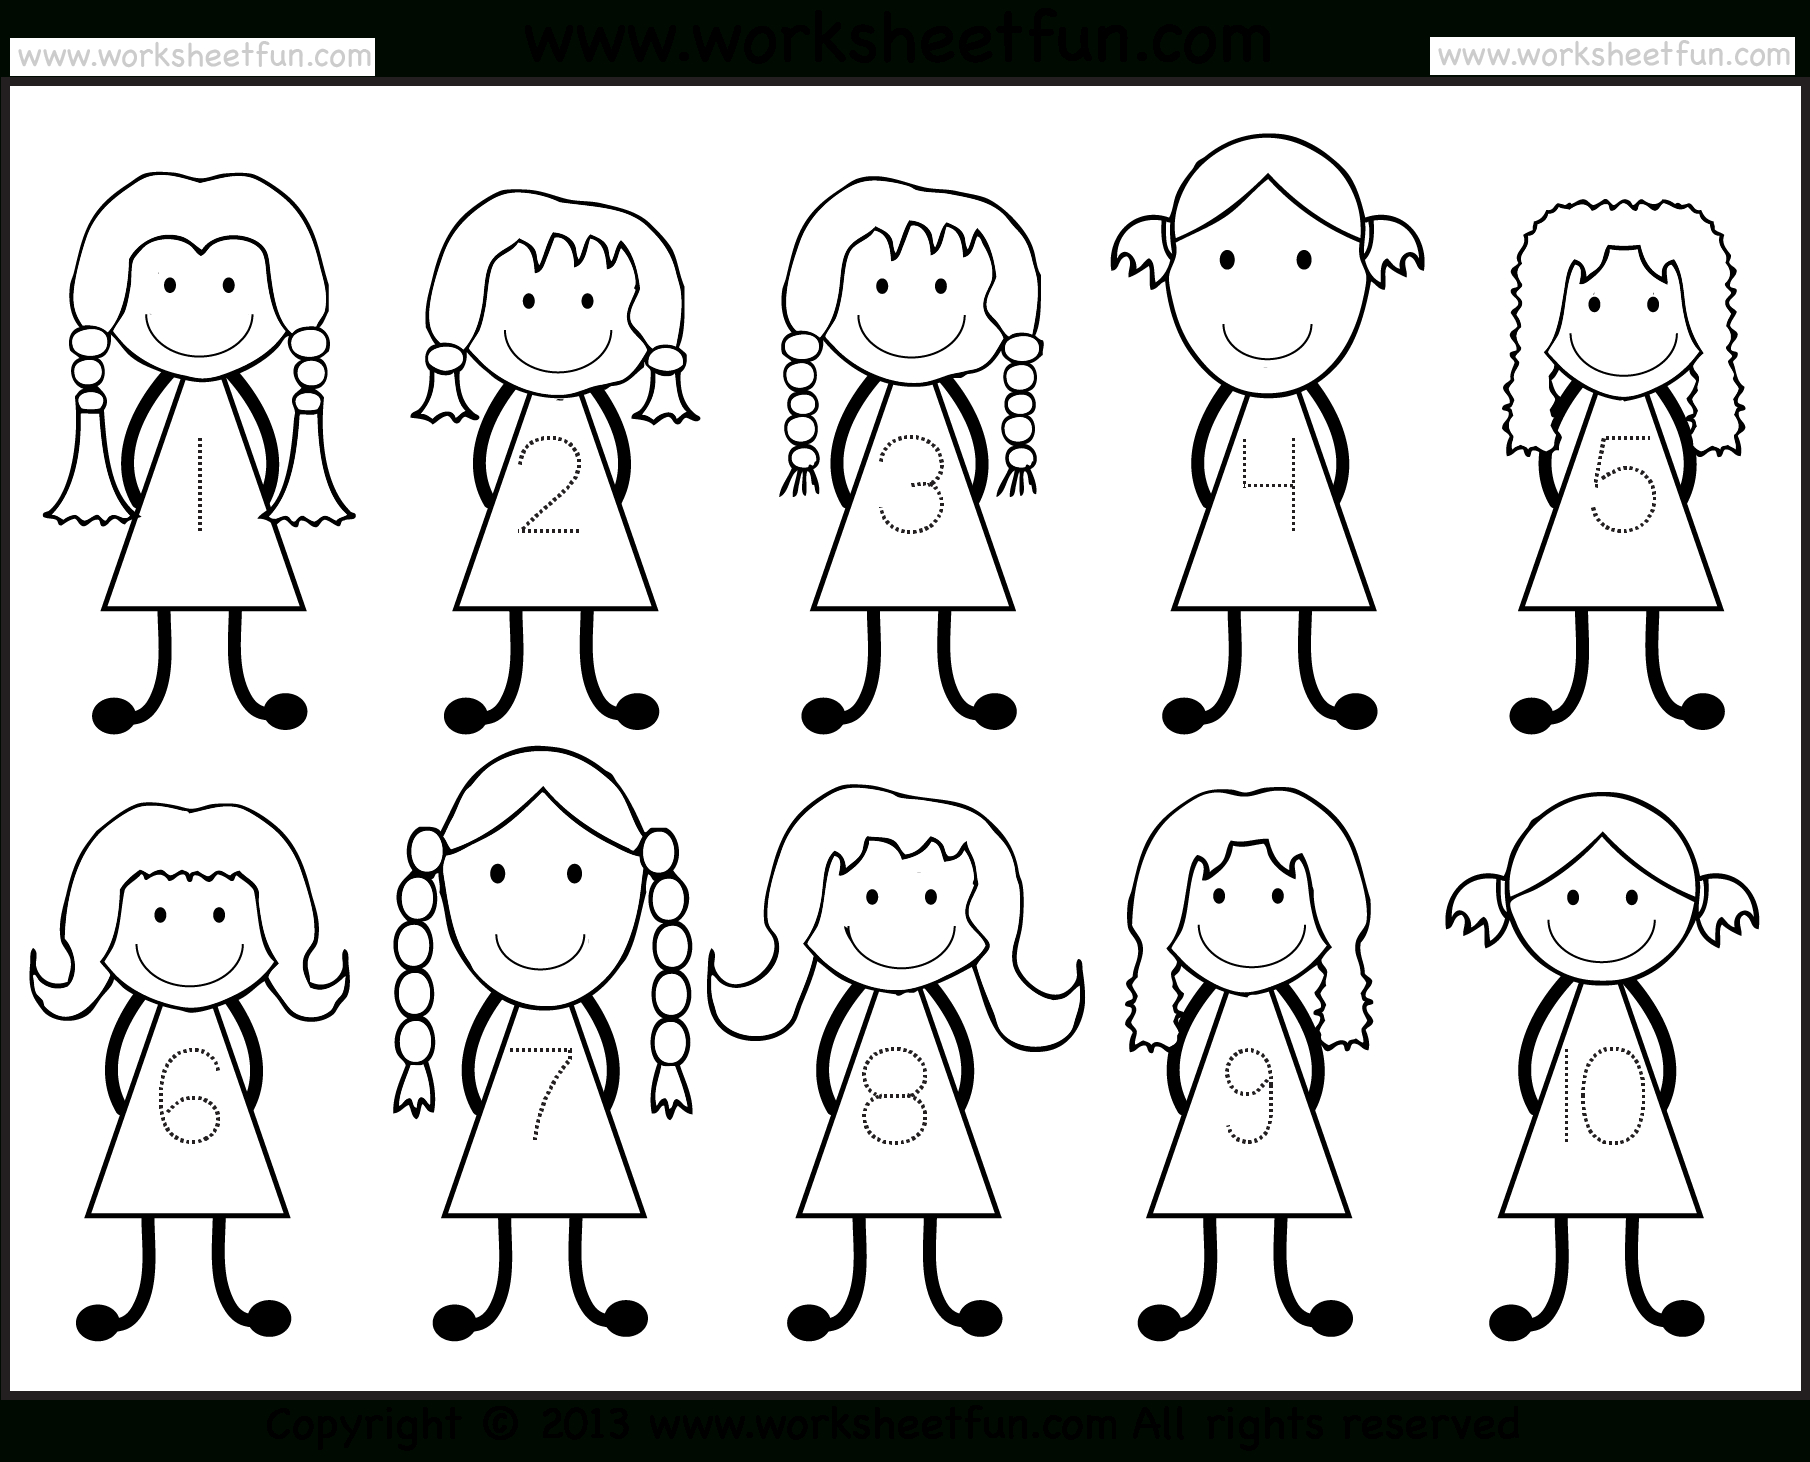 Tracing – Number Tracing / Free Printable Worksheets – Worksheetfun | Printable Number Tracing Worksheets For Kindergarten